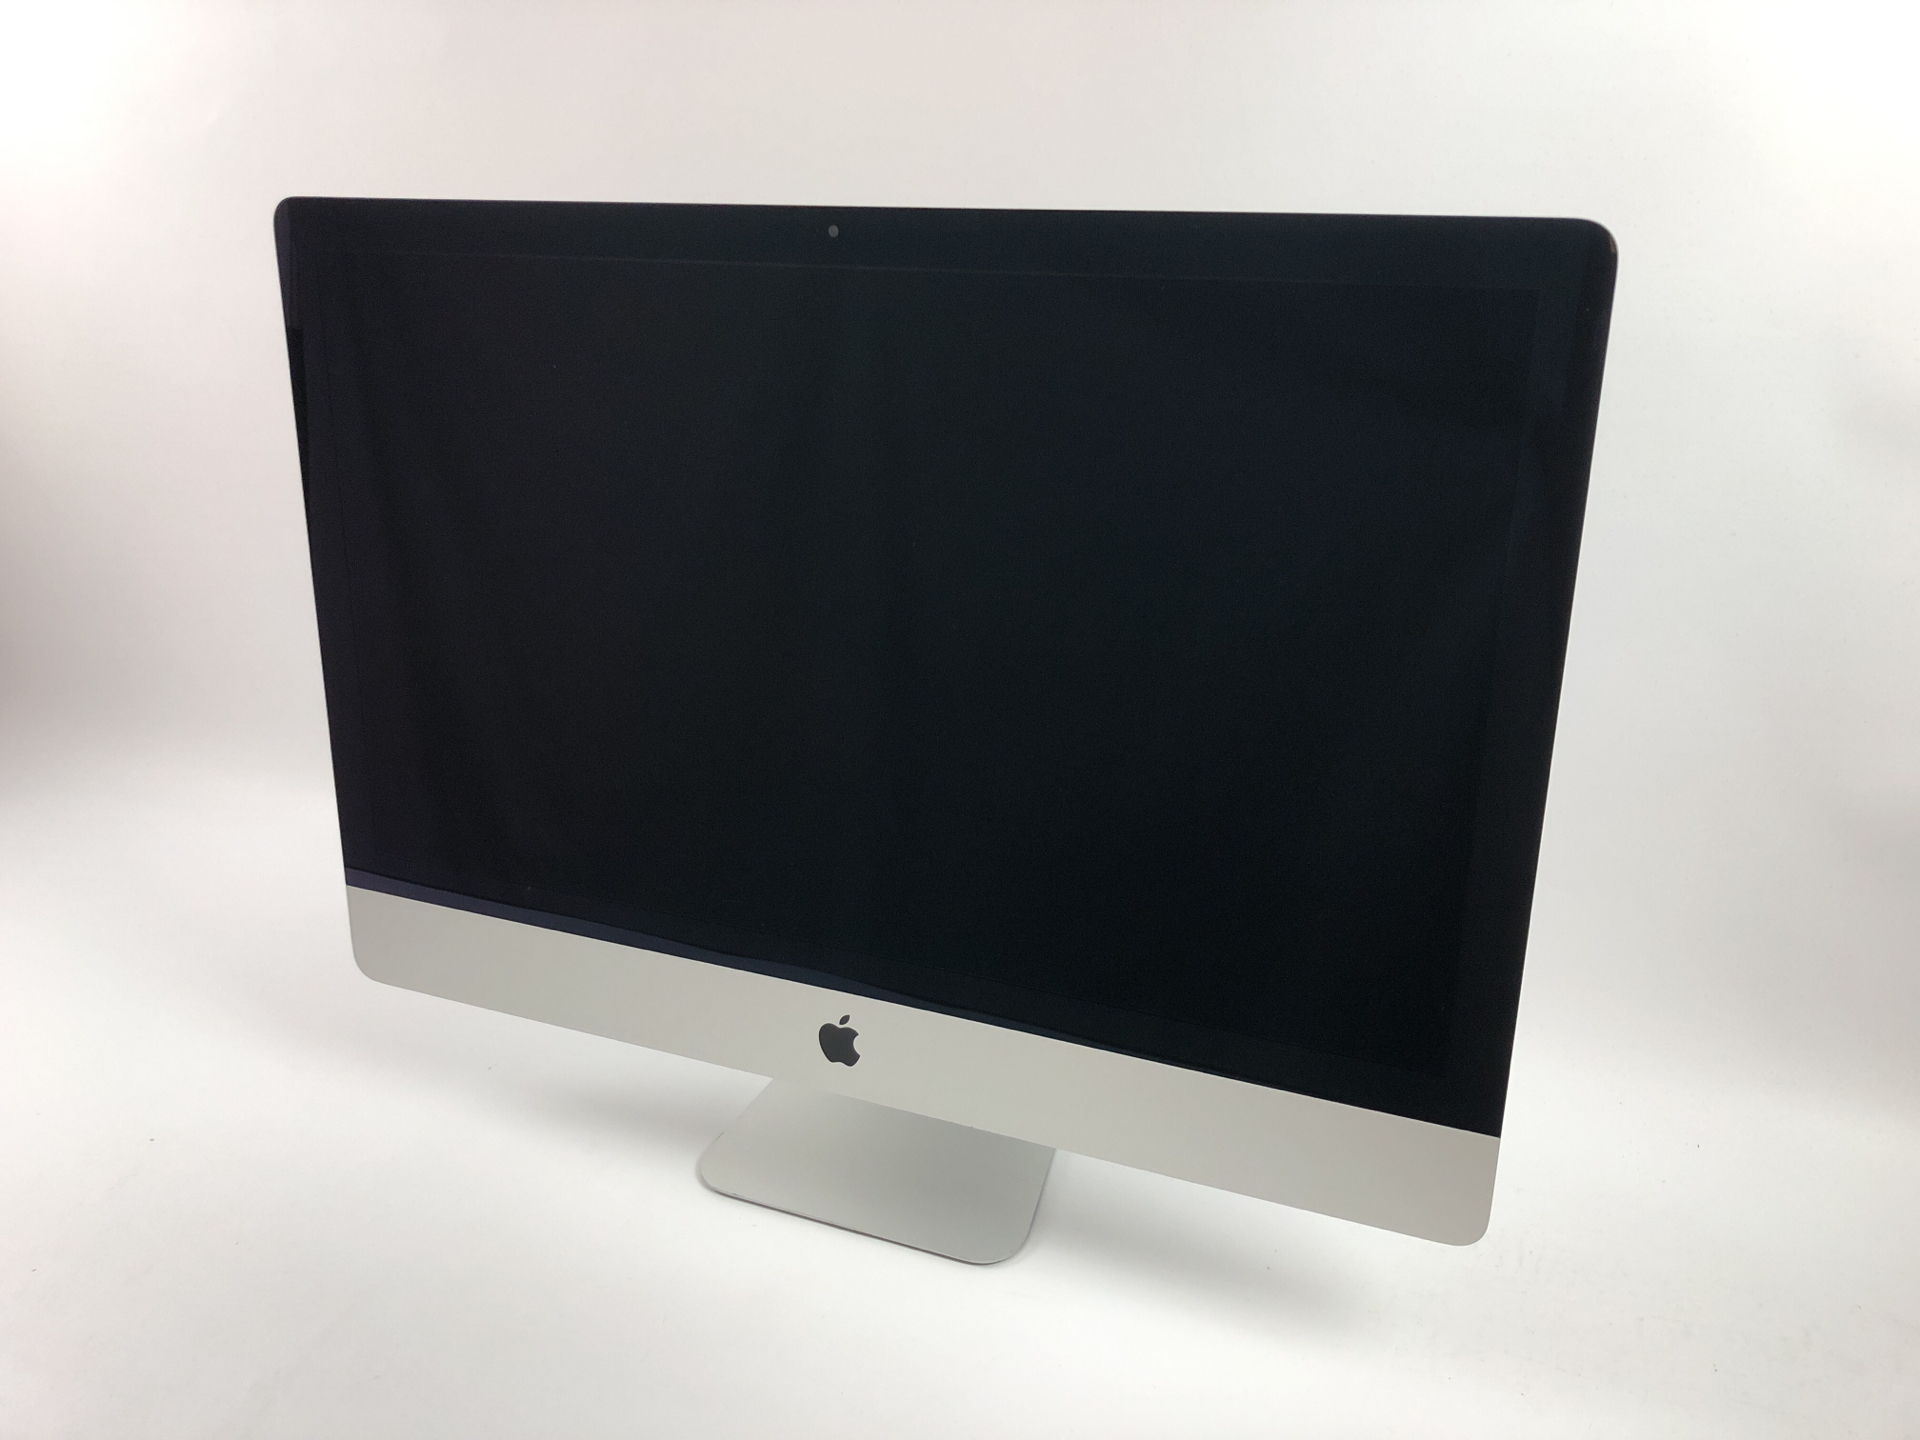 "iMac 27"" Late 2013 (Intel Quad-Core i7 3.5 GHz 32 GB RAM 1 TB Fusion Drive), Intel Quad-Core i7 3.5 GHz, 32 GB RAM, 1 TB Fusion Drive, bild 1"